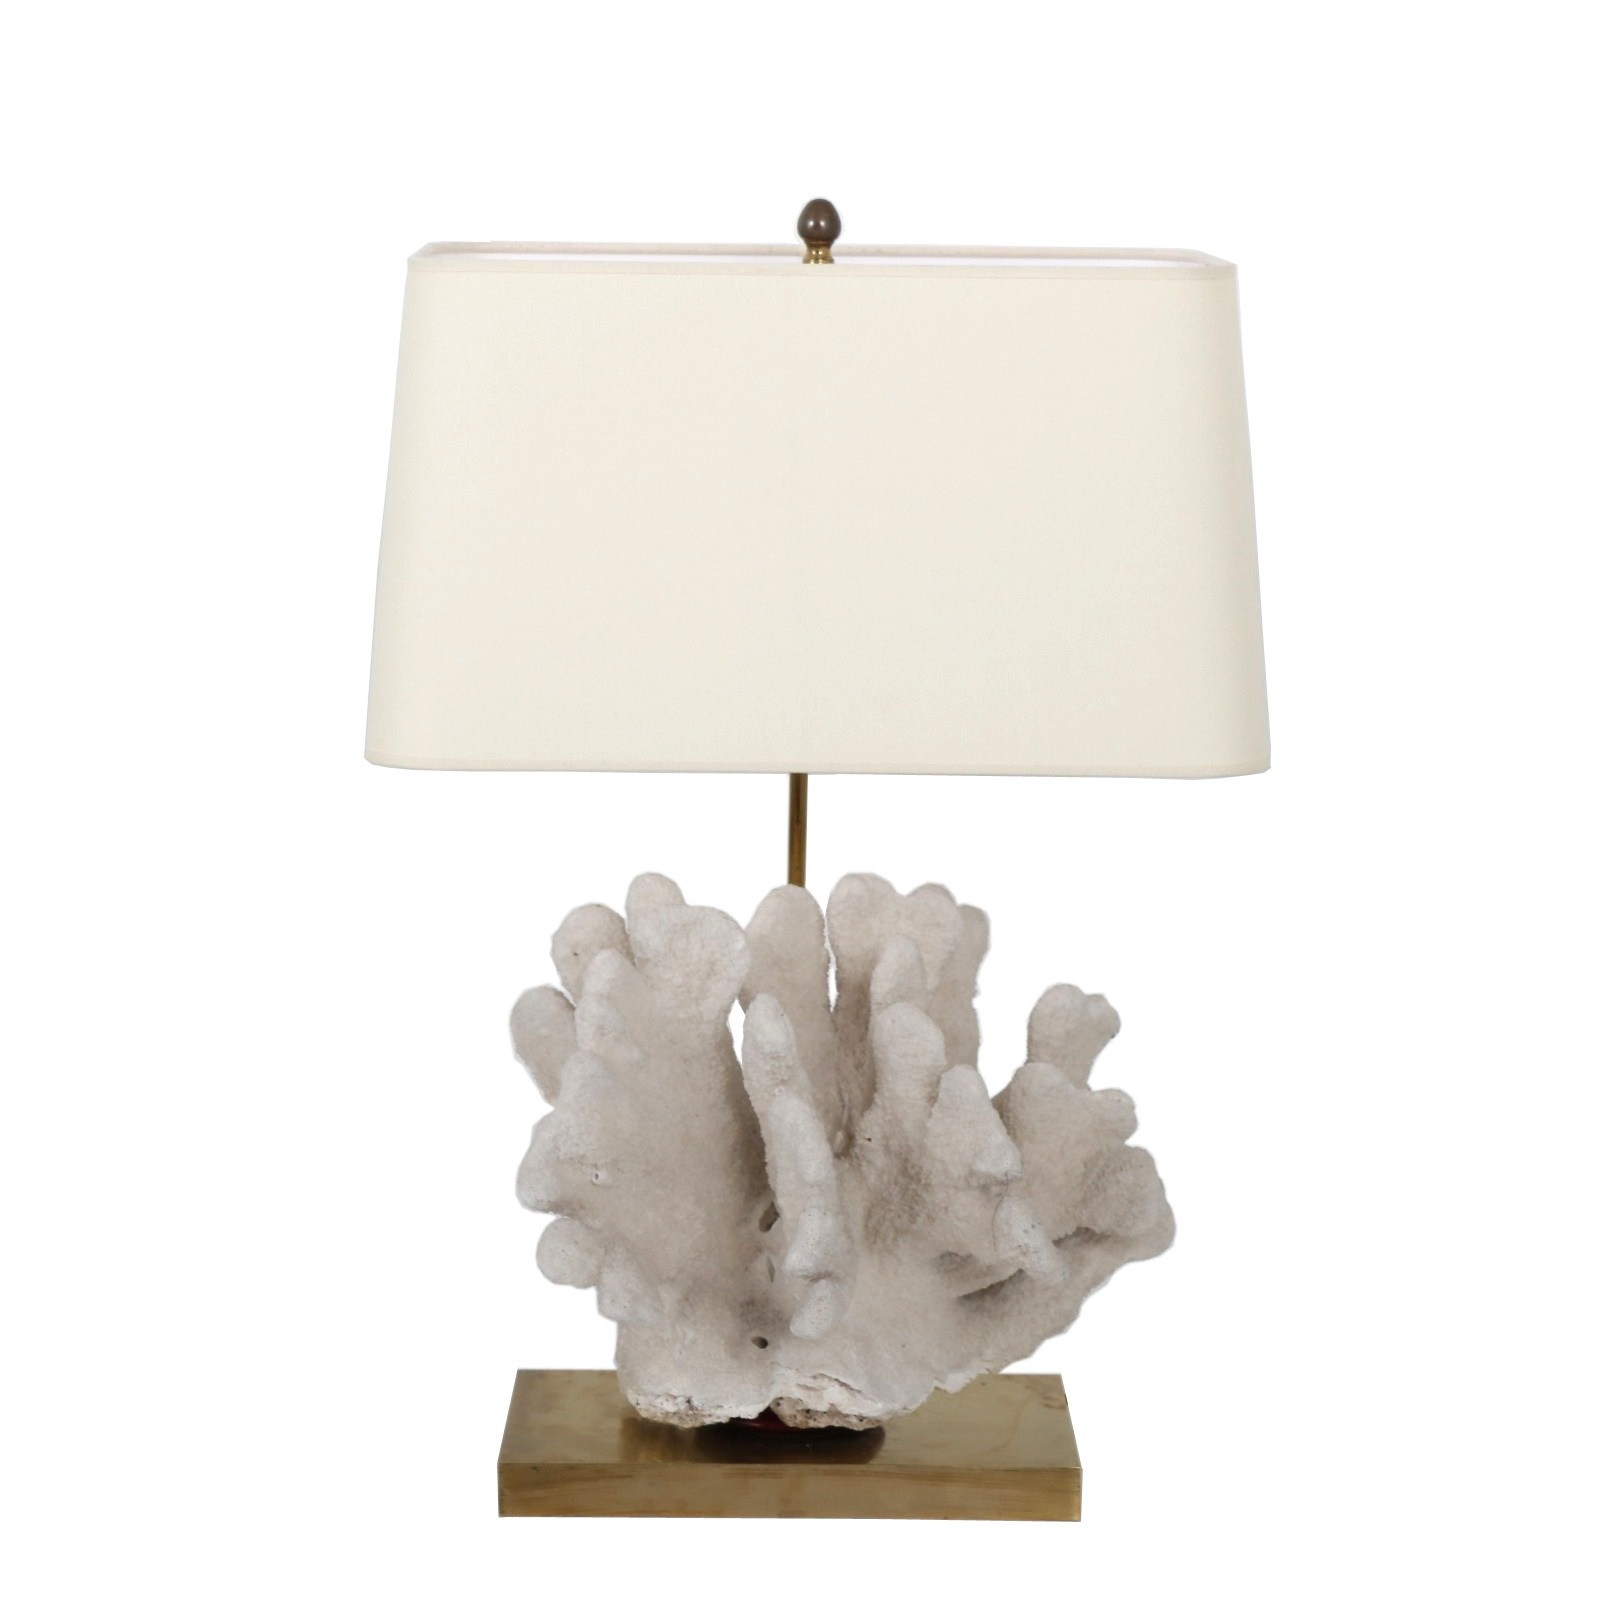 L4468 1970s Luxurious brass table lamp with large coral and fabric hood Belgium